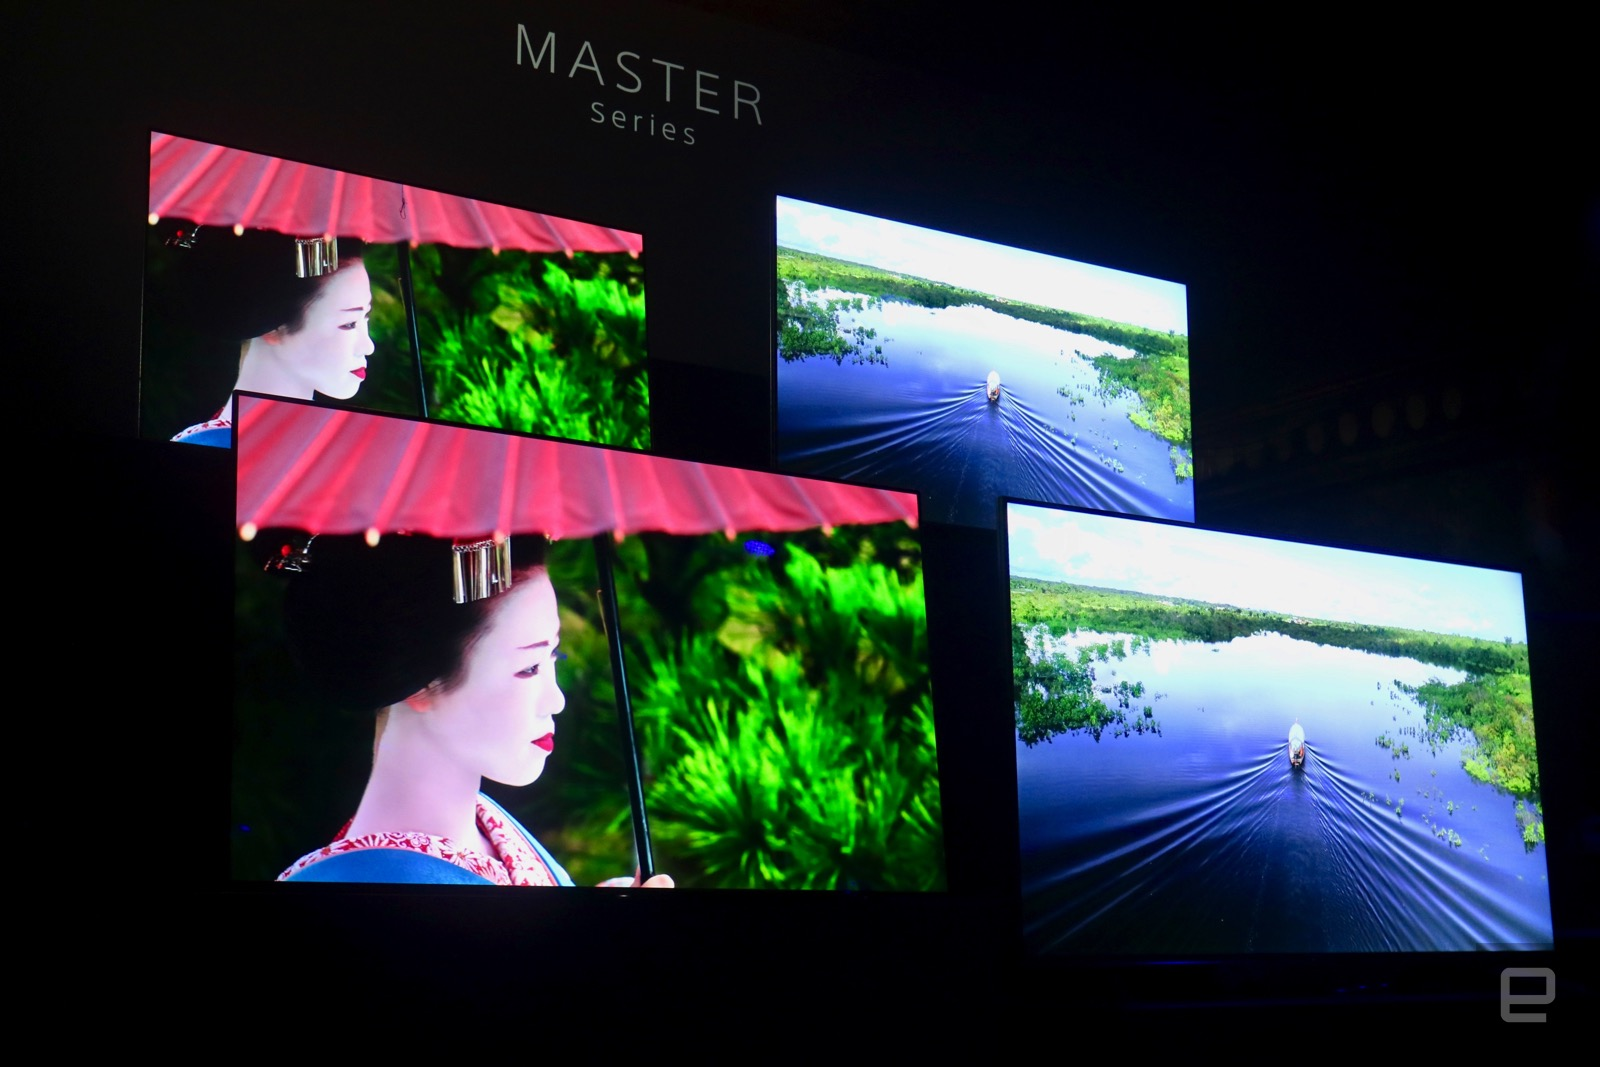 Sony Master Series 4K HDR TVs have a special Netflix optimization mode